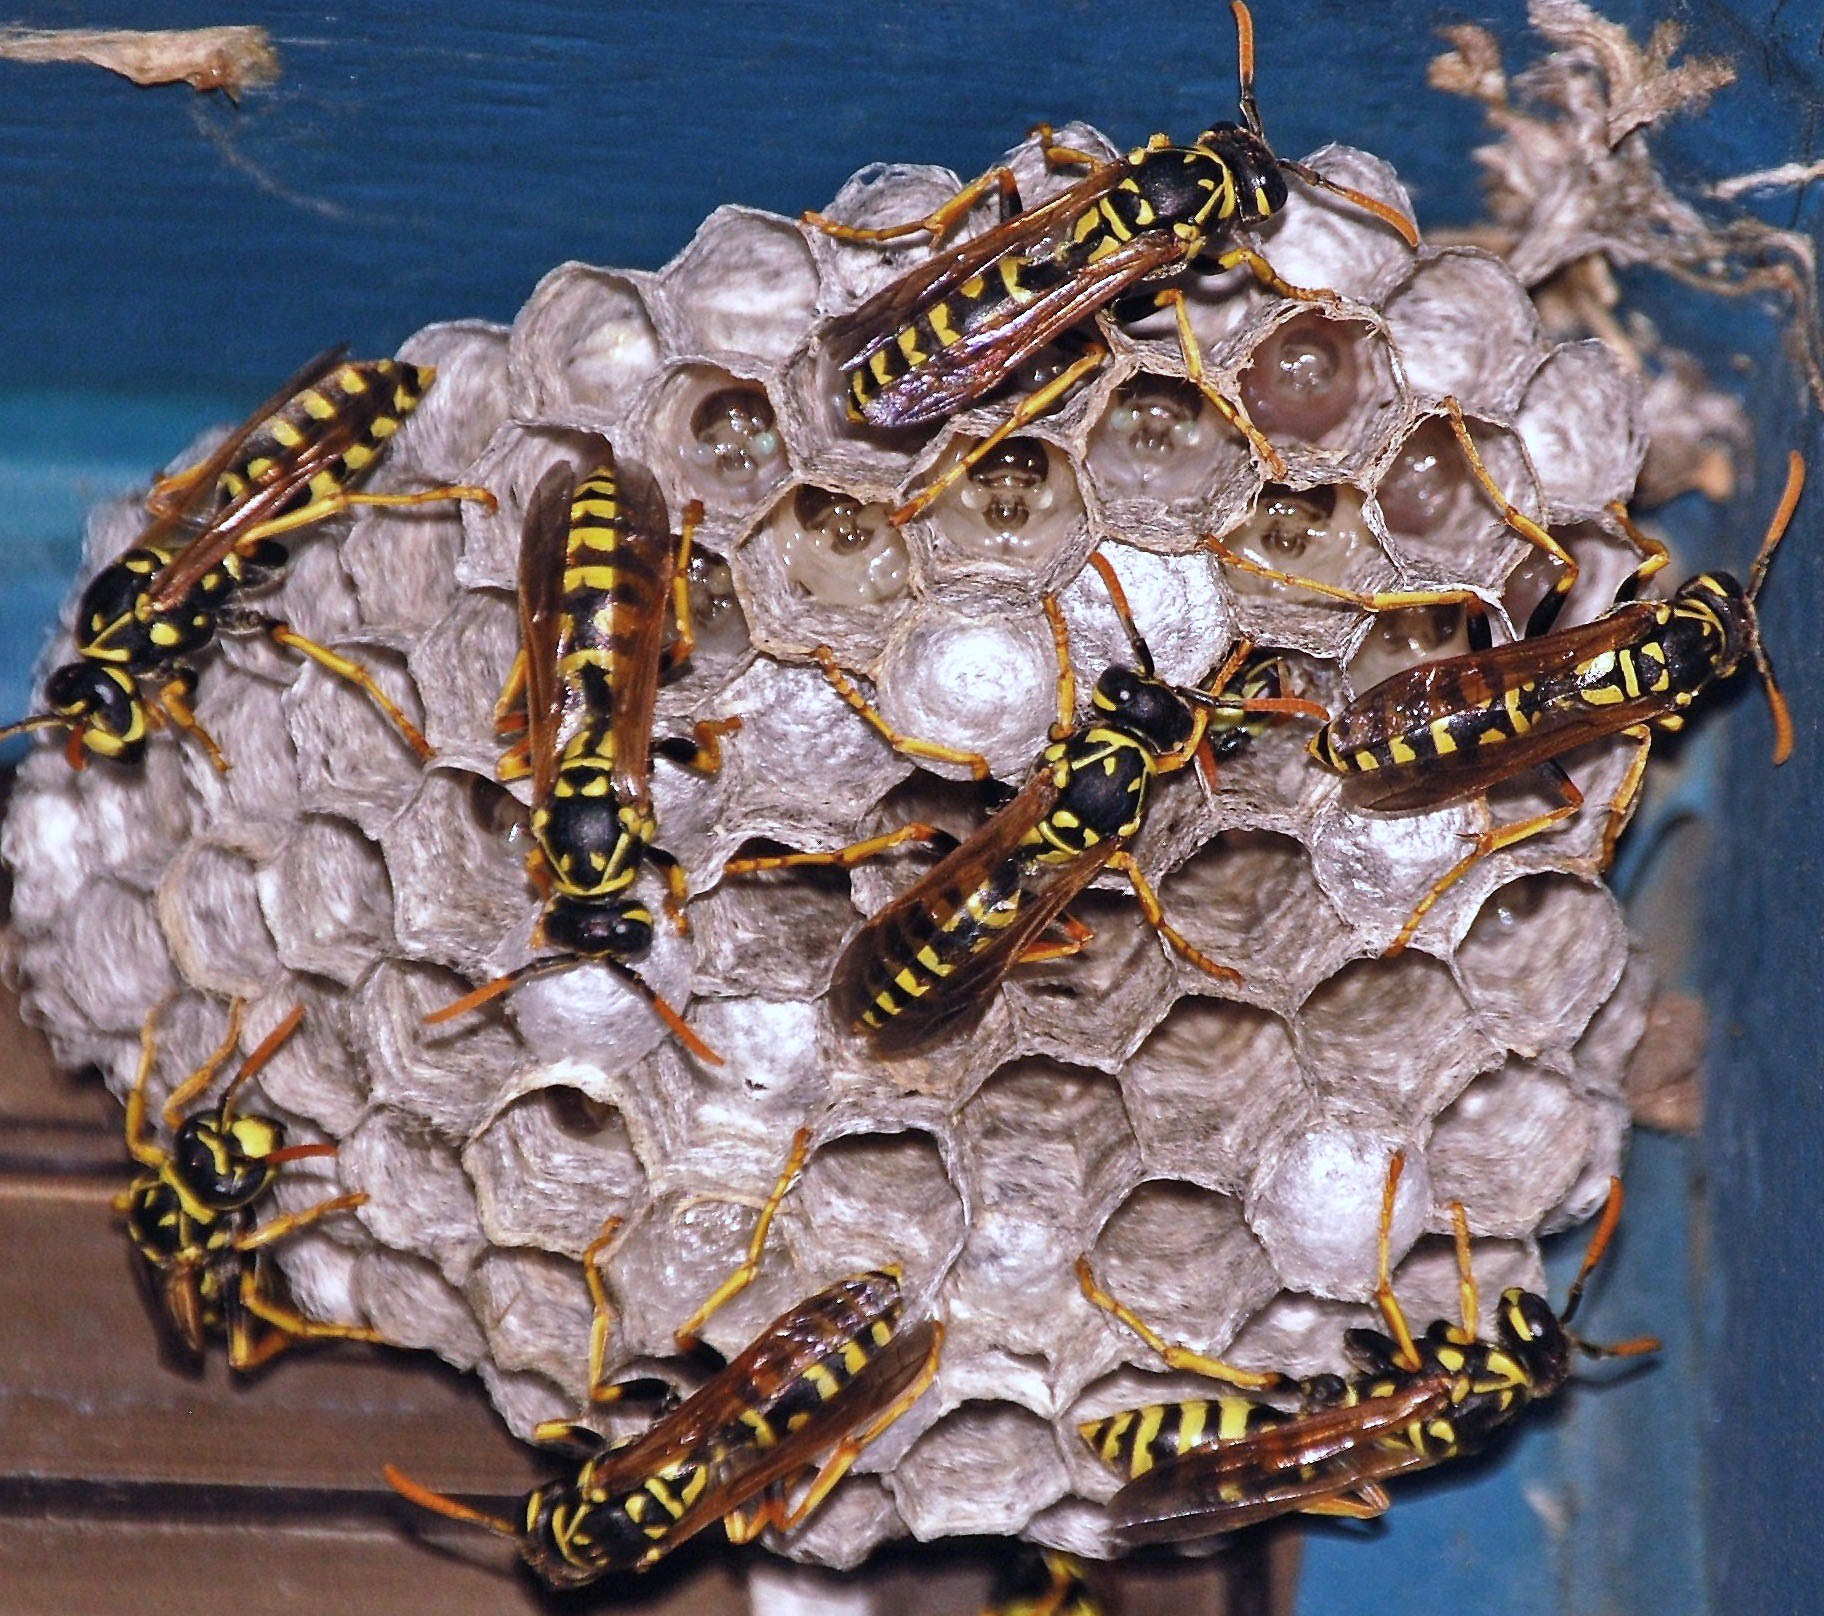 Social wasps constructing a paper nest